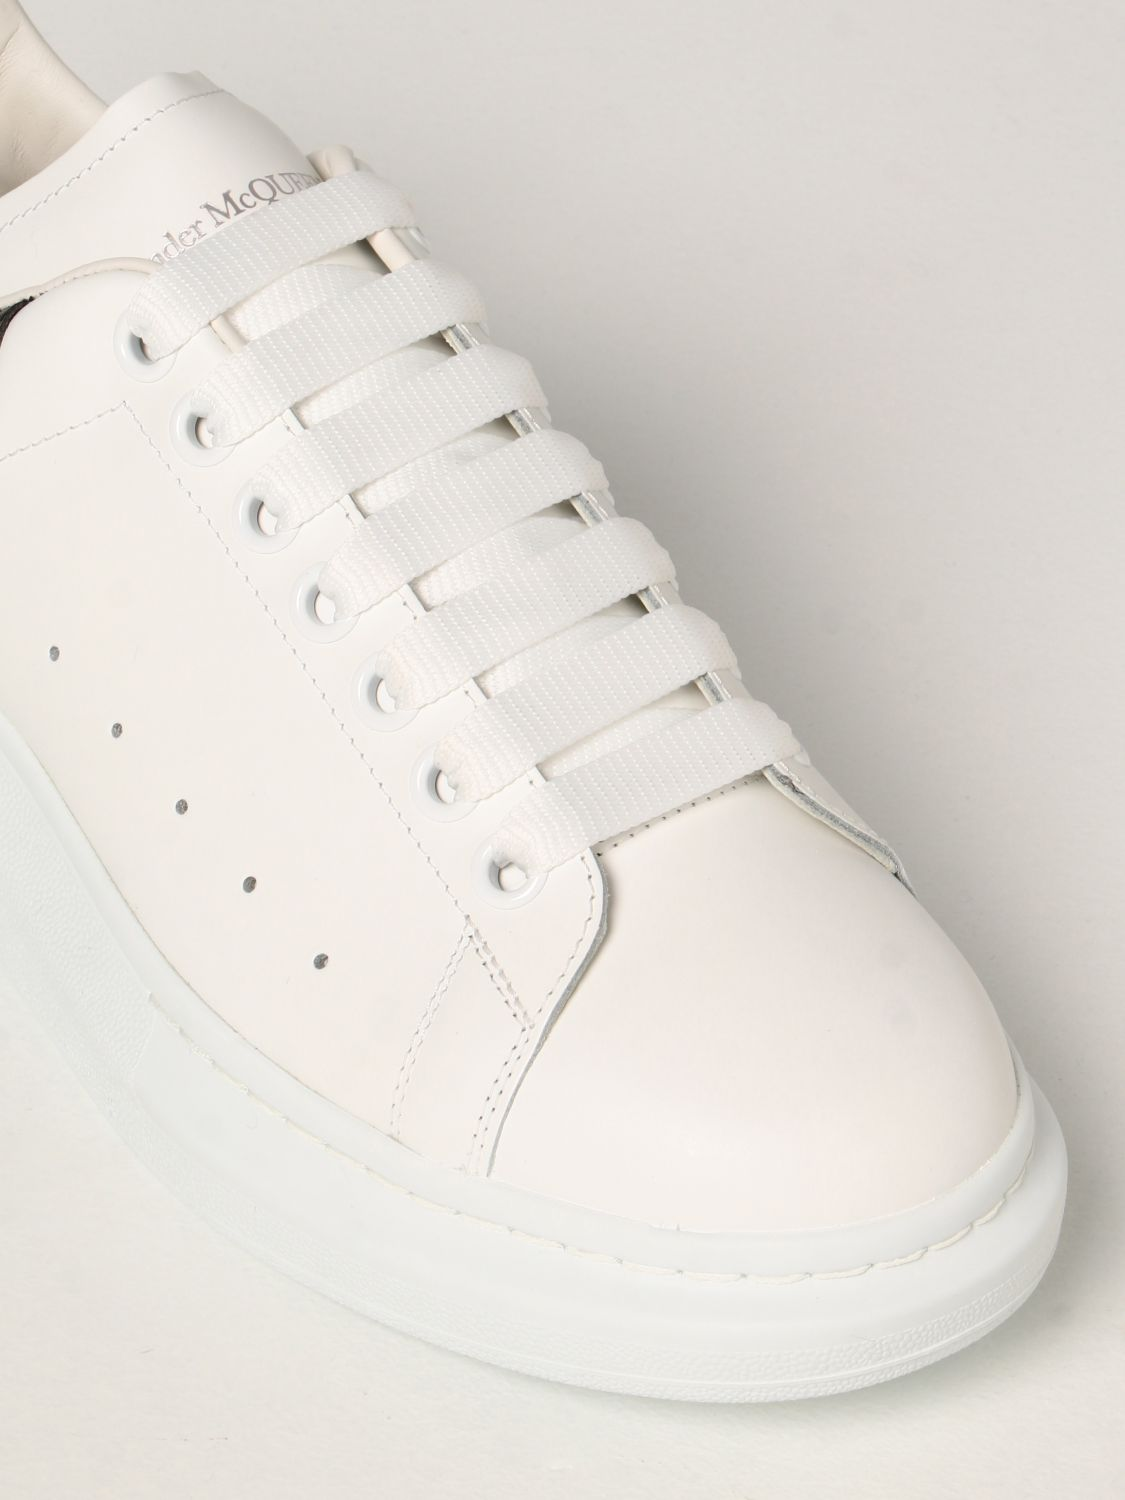 Trainers Alexander Mcqueen: Larry Alexander McQueen trainers in leather white 4